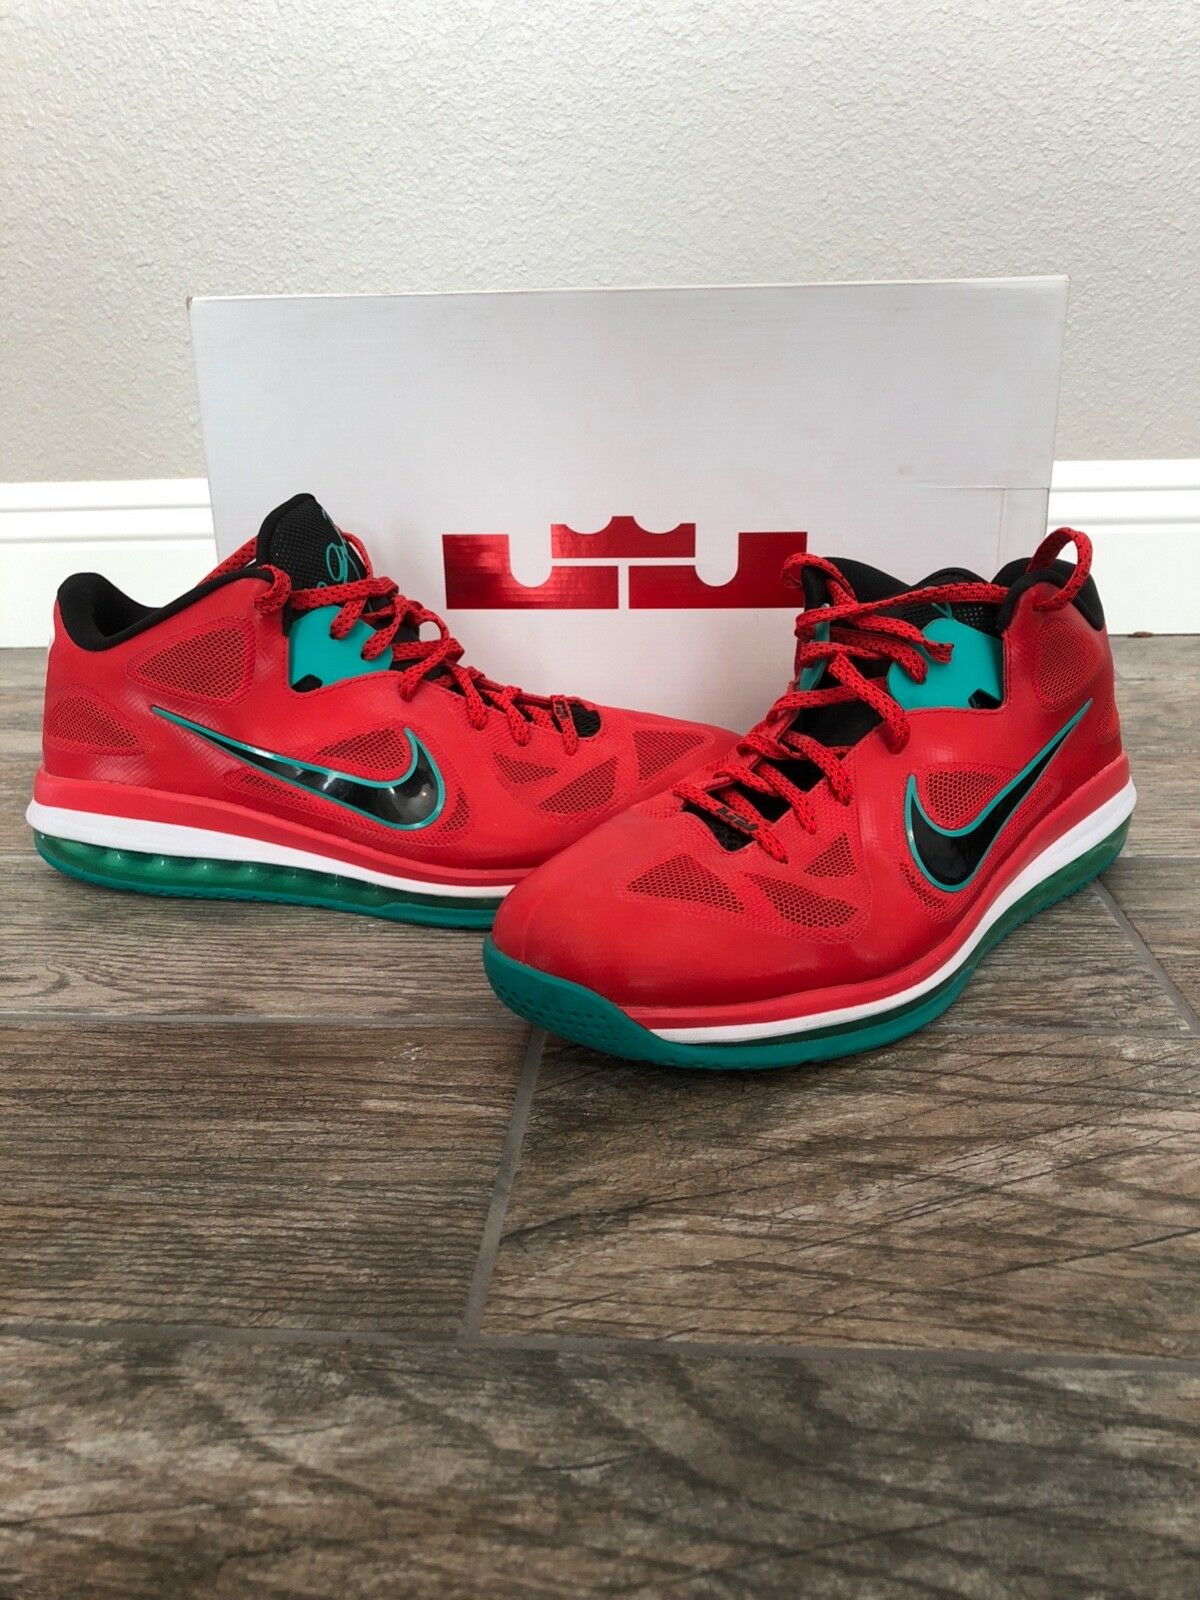 Nike Lebron 9 Low Liverpool Size 15